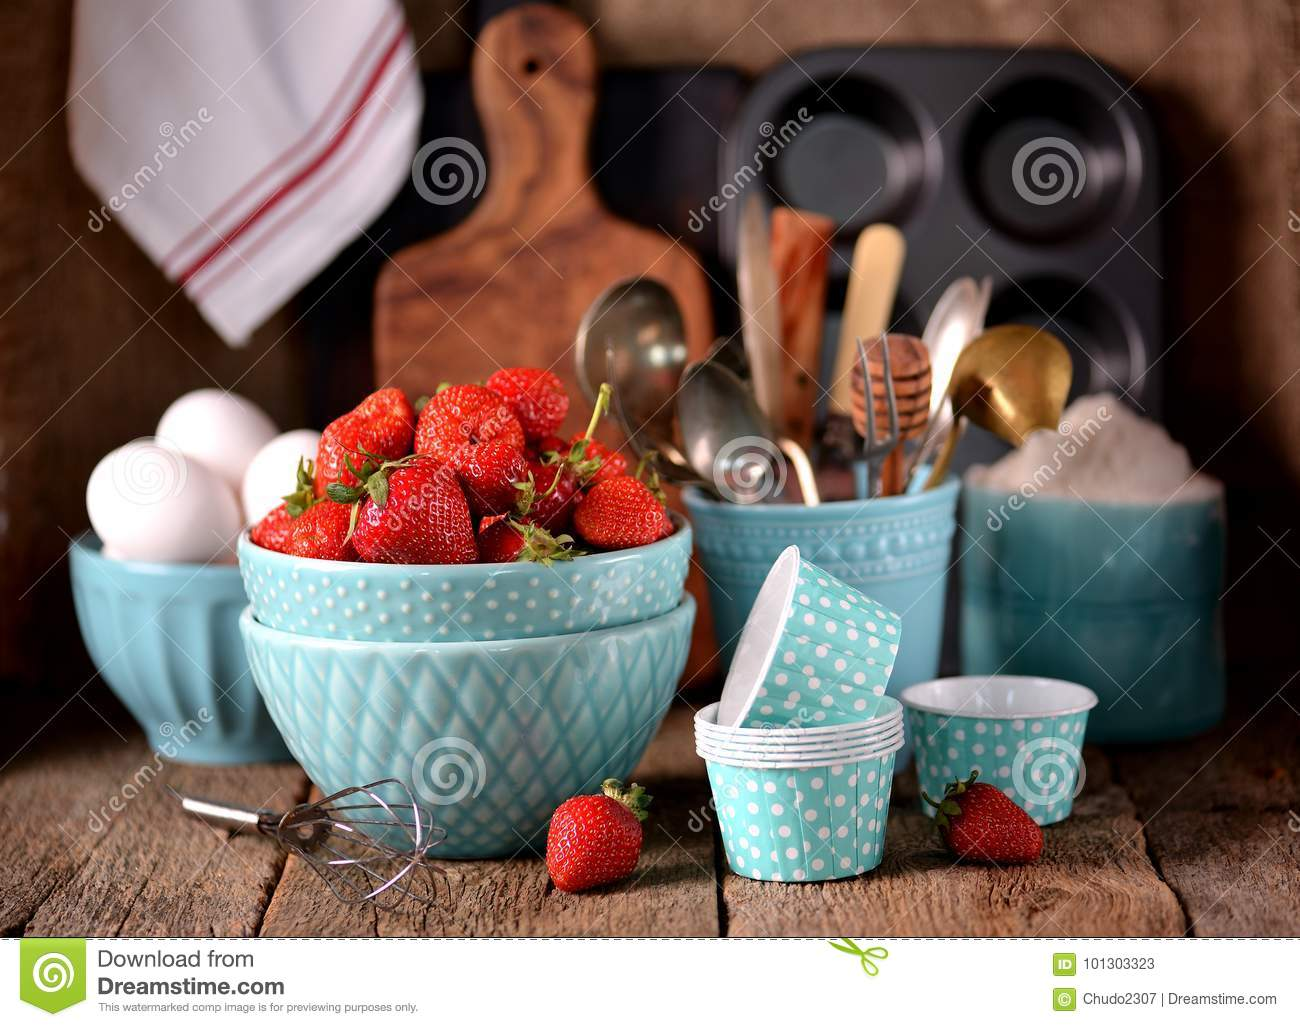 Kitchen Accessories For Cooking Muffins, Organic Strawberries And ...